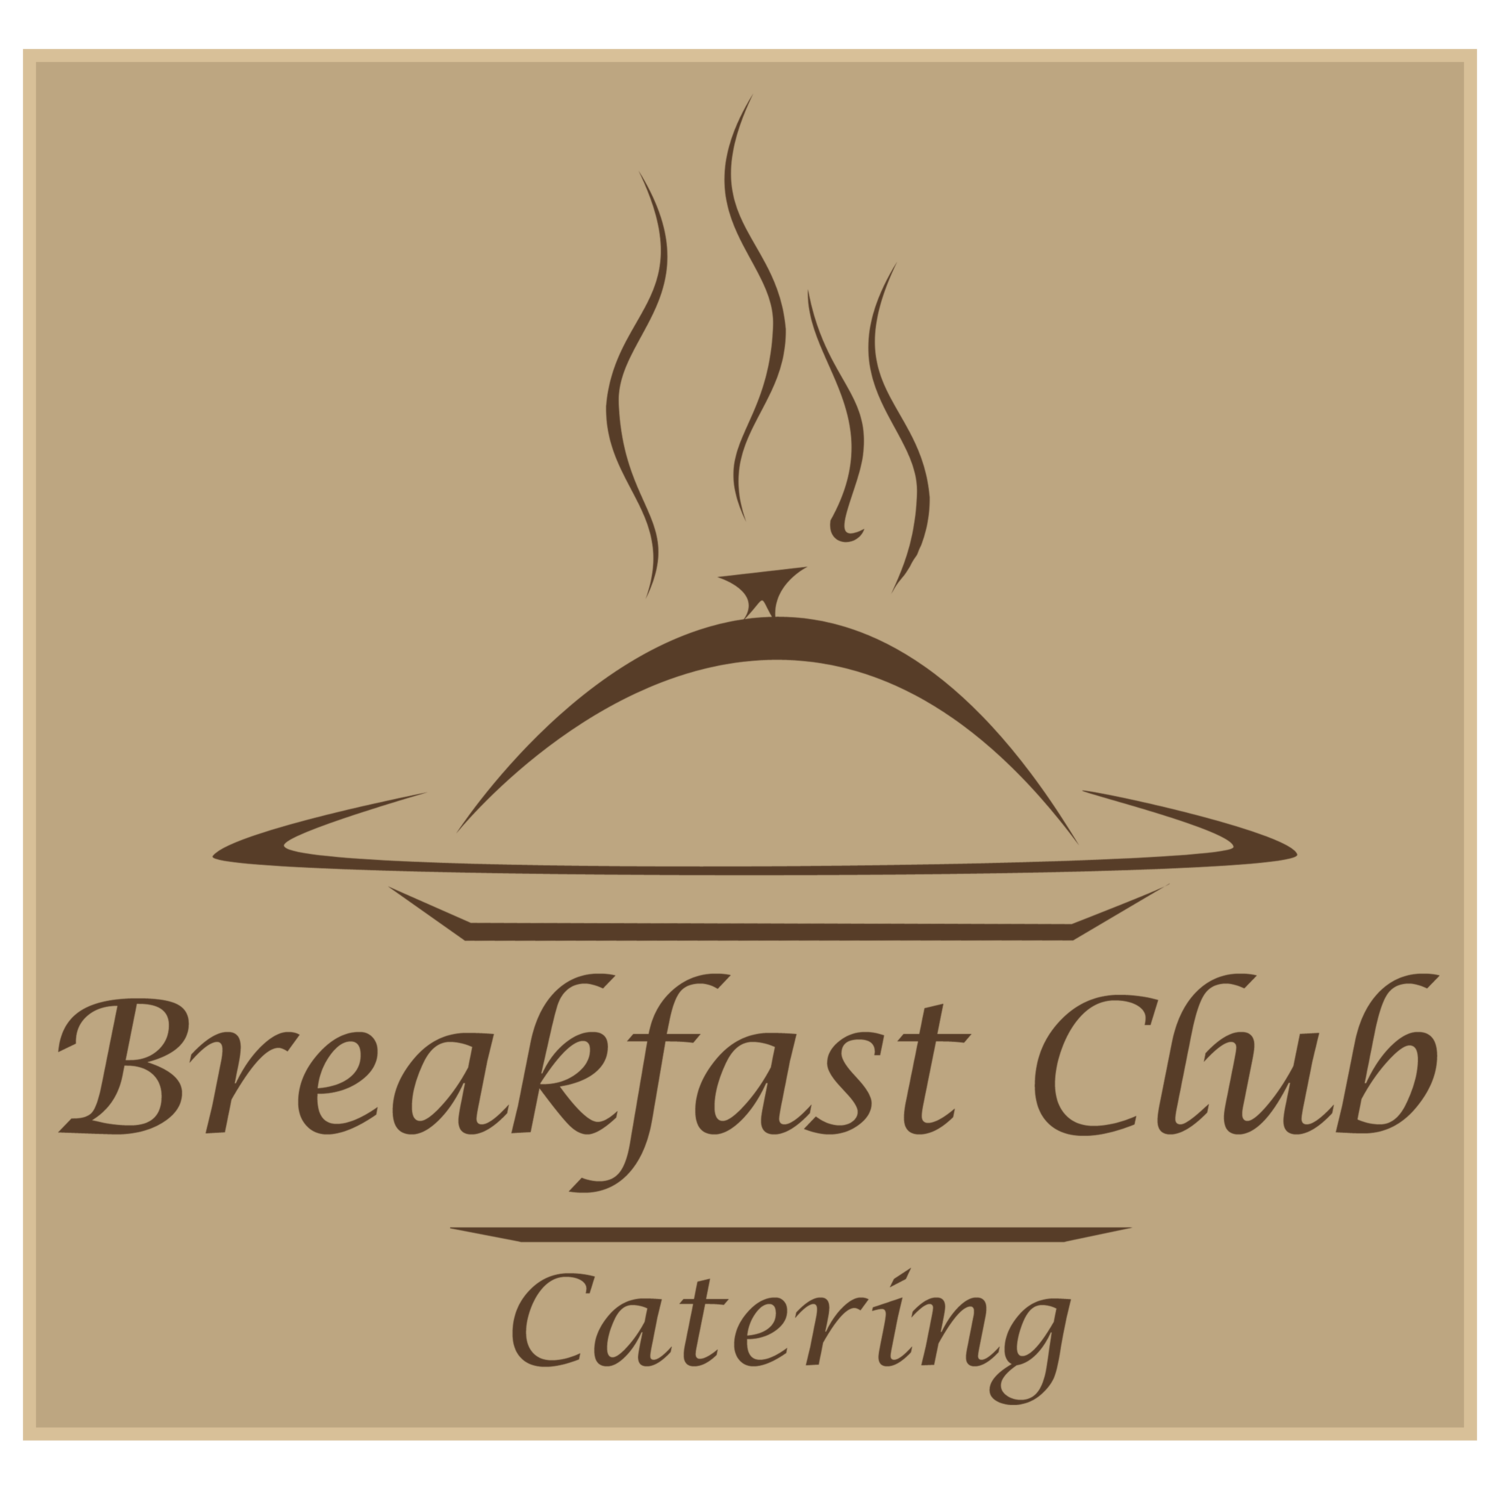 Breakfast Club Catering